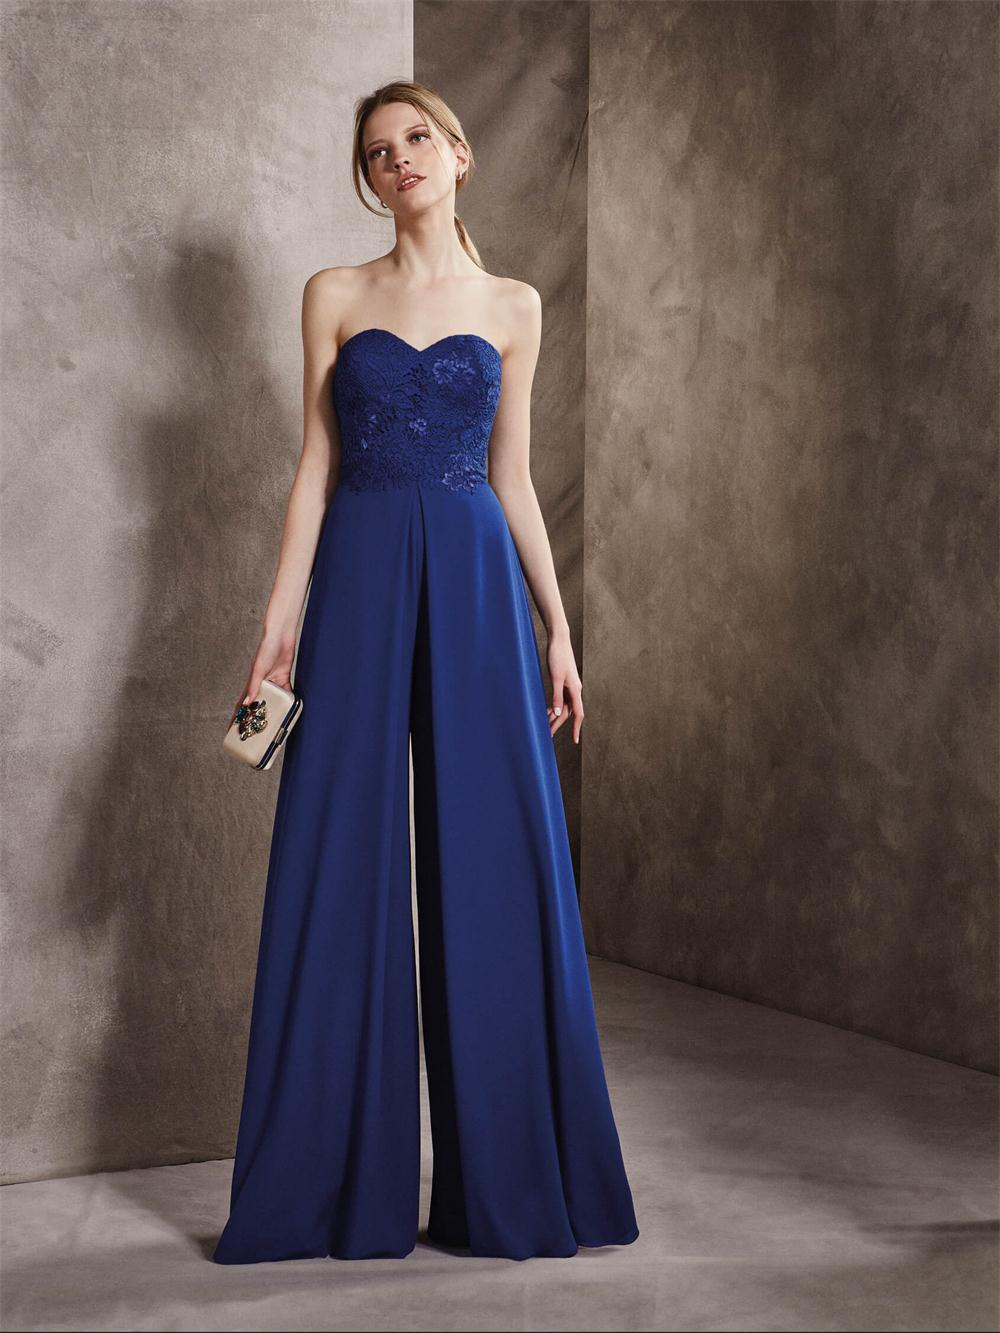 Popular Evening Dress Cheap Pants Lots China